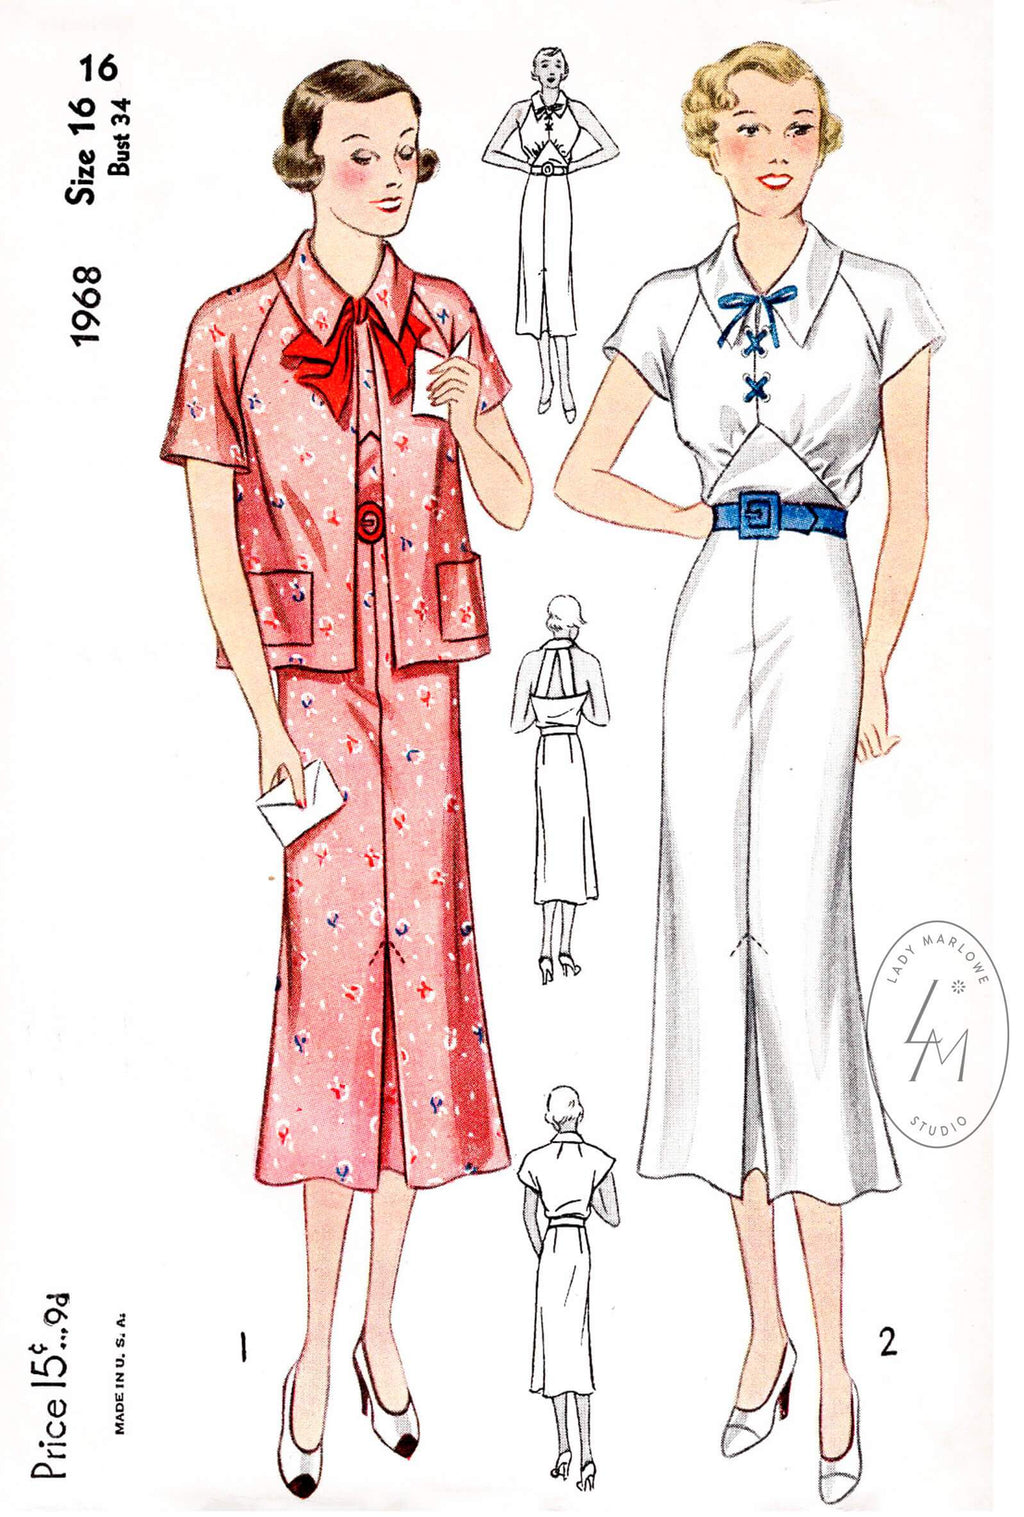 Simplicity 1968 1930s sports dress vintage sewing pattern